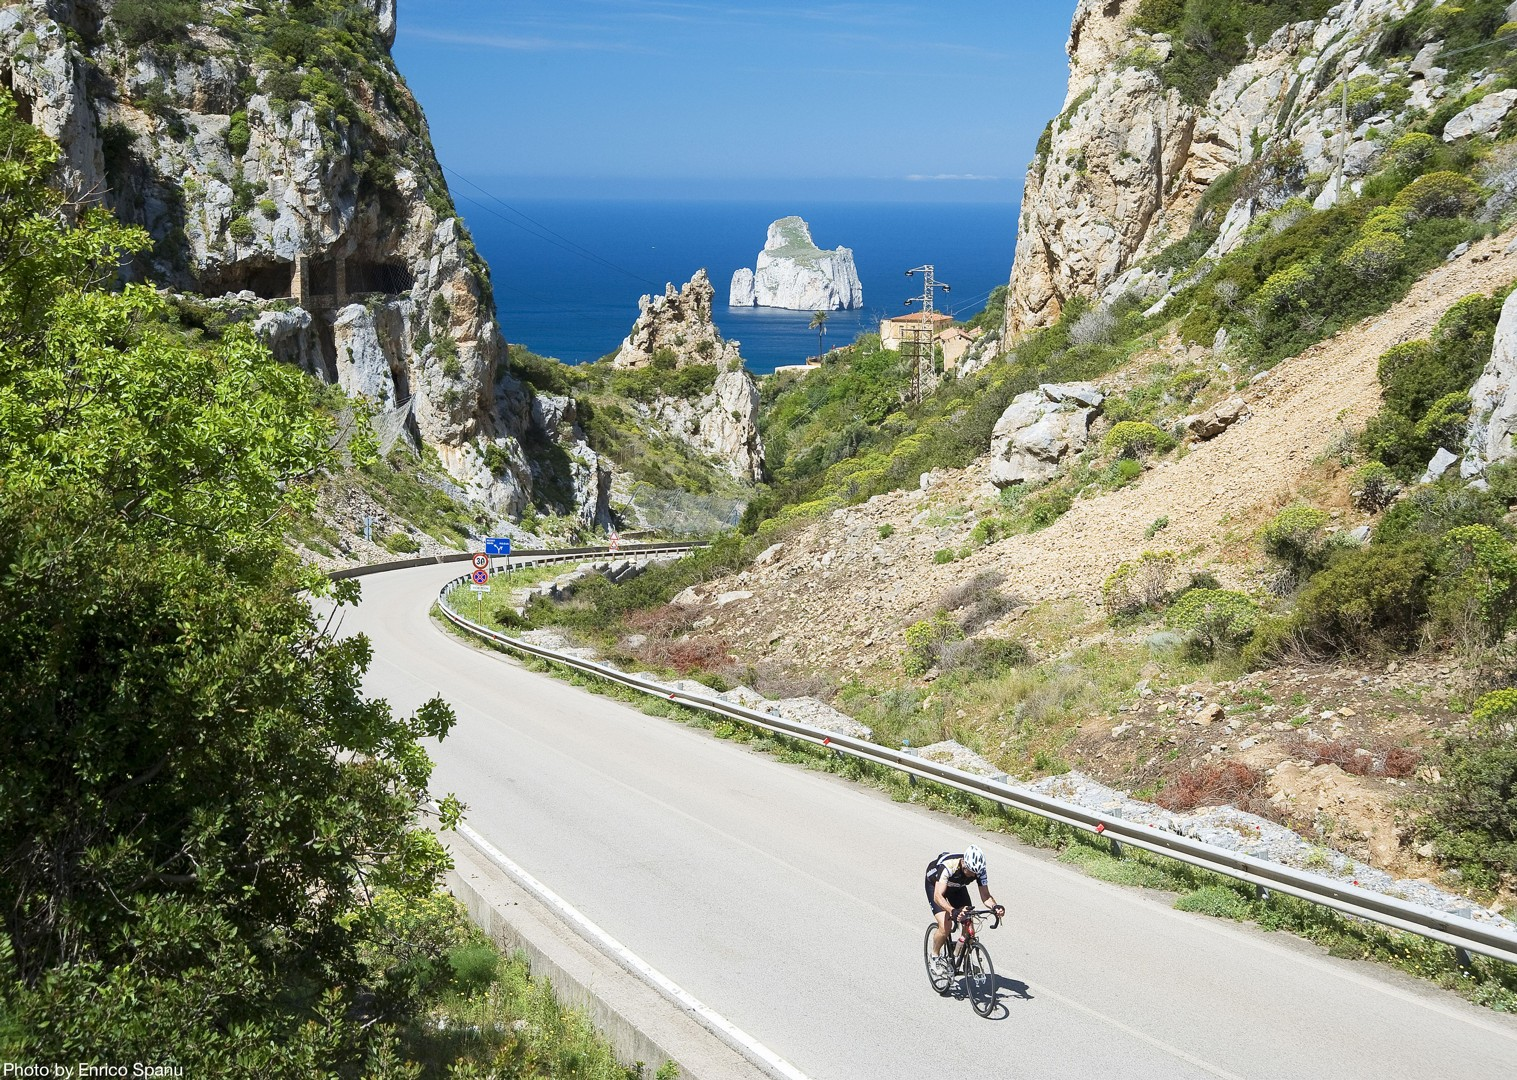 Sardinia-Coastal-Explorer-Self-Guided-Road-Cycling-Holiday.jpg - Italy - Sardinia - Coastal Explorer - Self Guided Road Cycling Holiday - Road Cycling